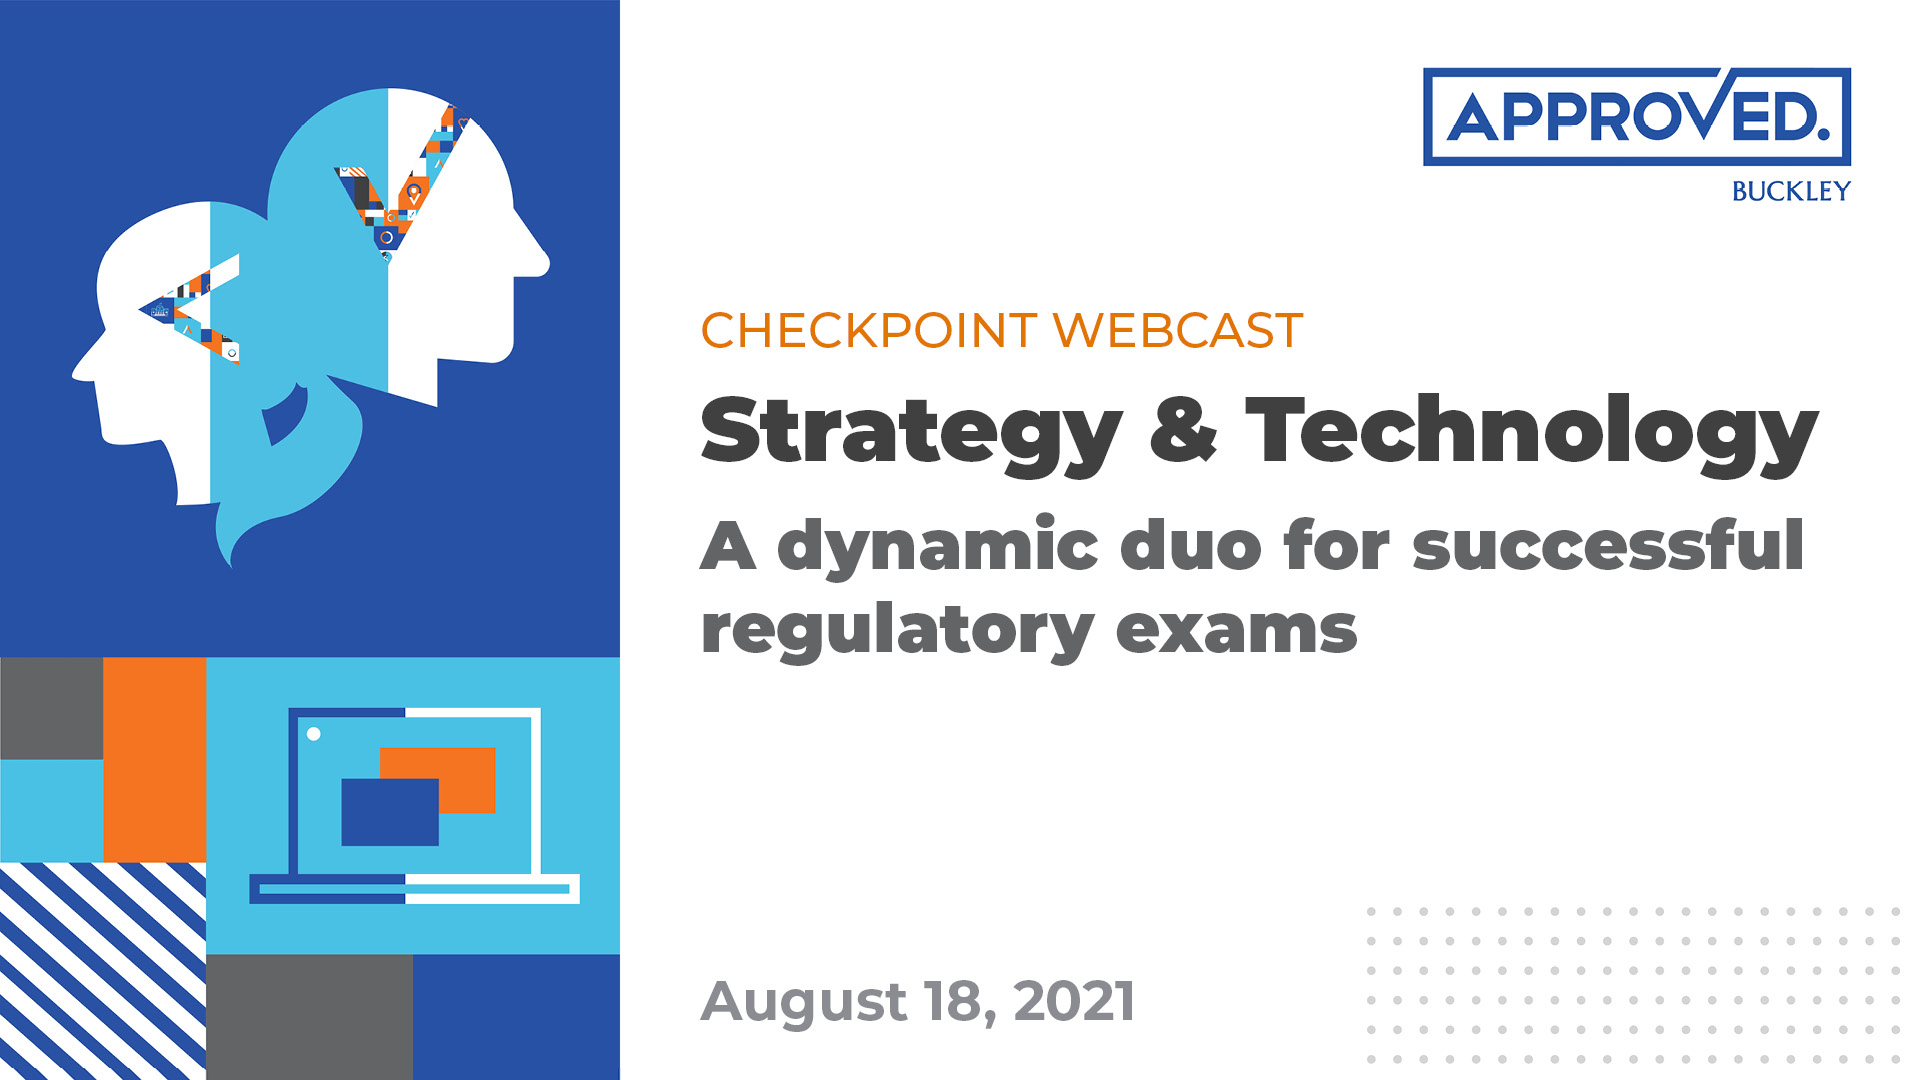 trategy & Technology: A dynamic duo for successful regulatory exams | APPROVED Checkpoint Webcast